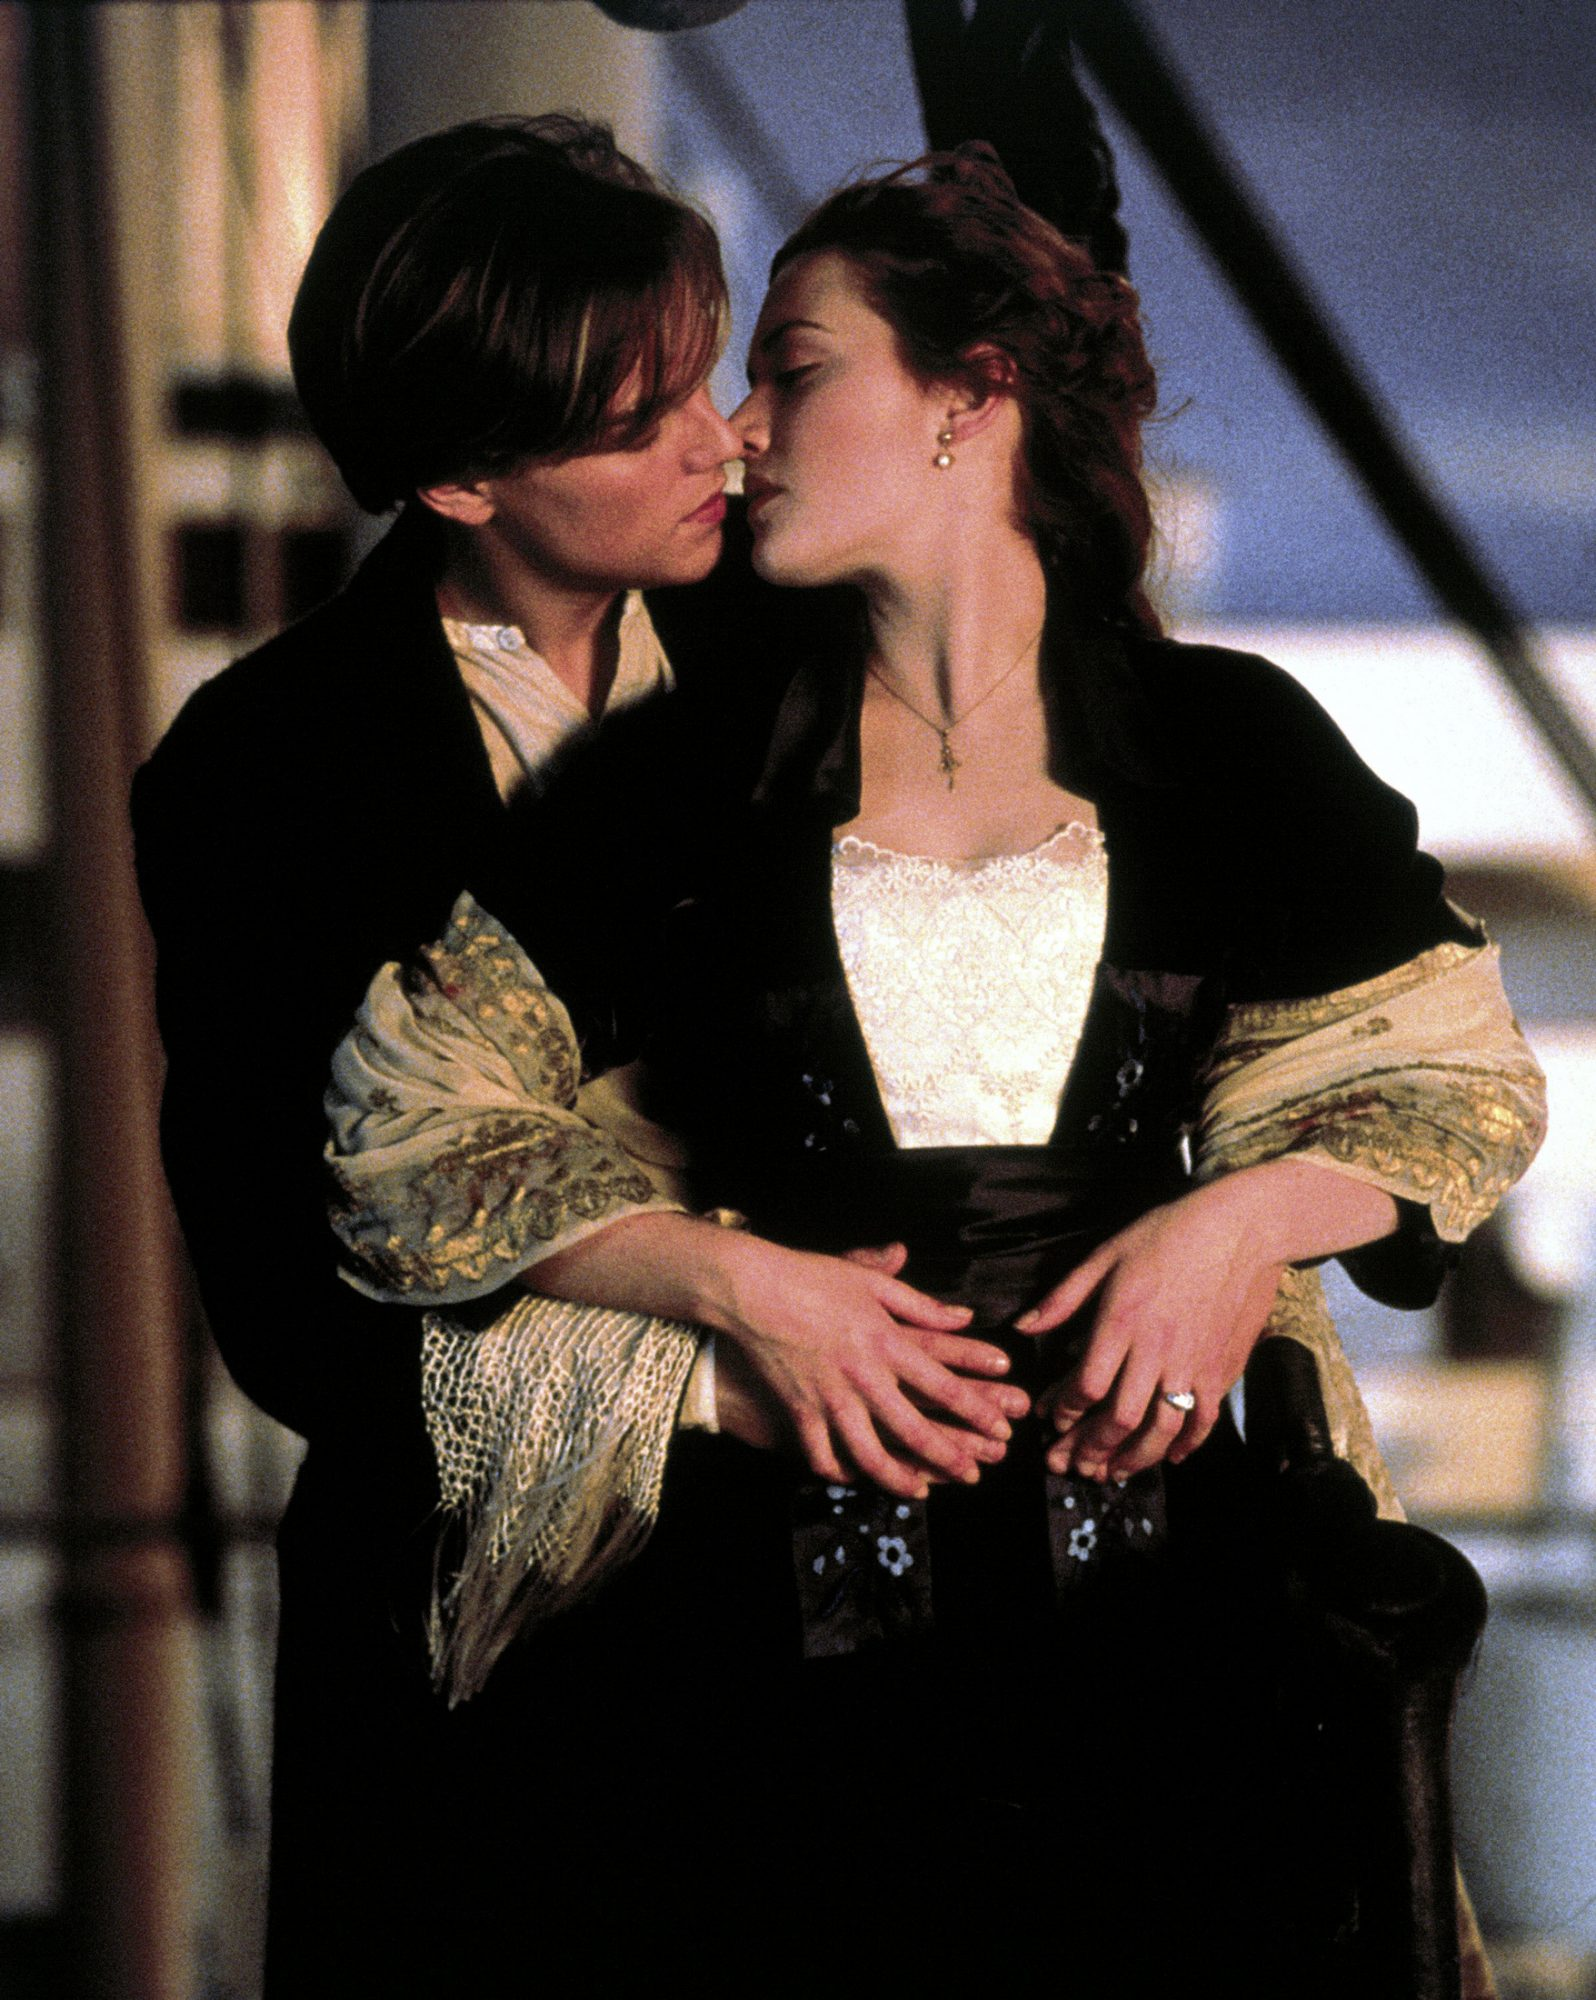 He made us swoon as Jack in Titanic.